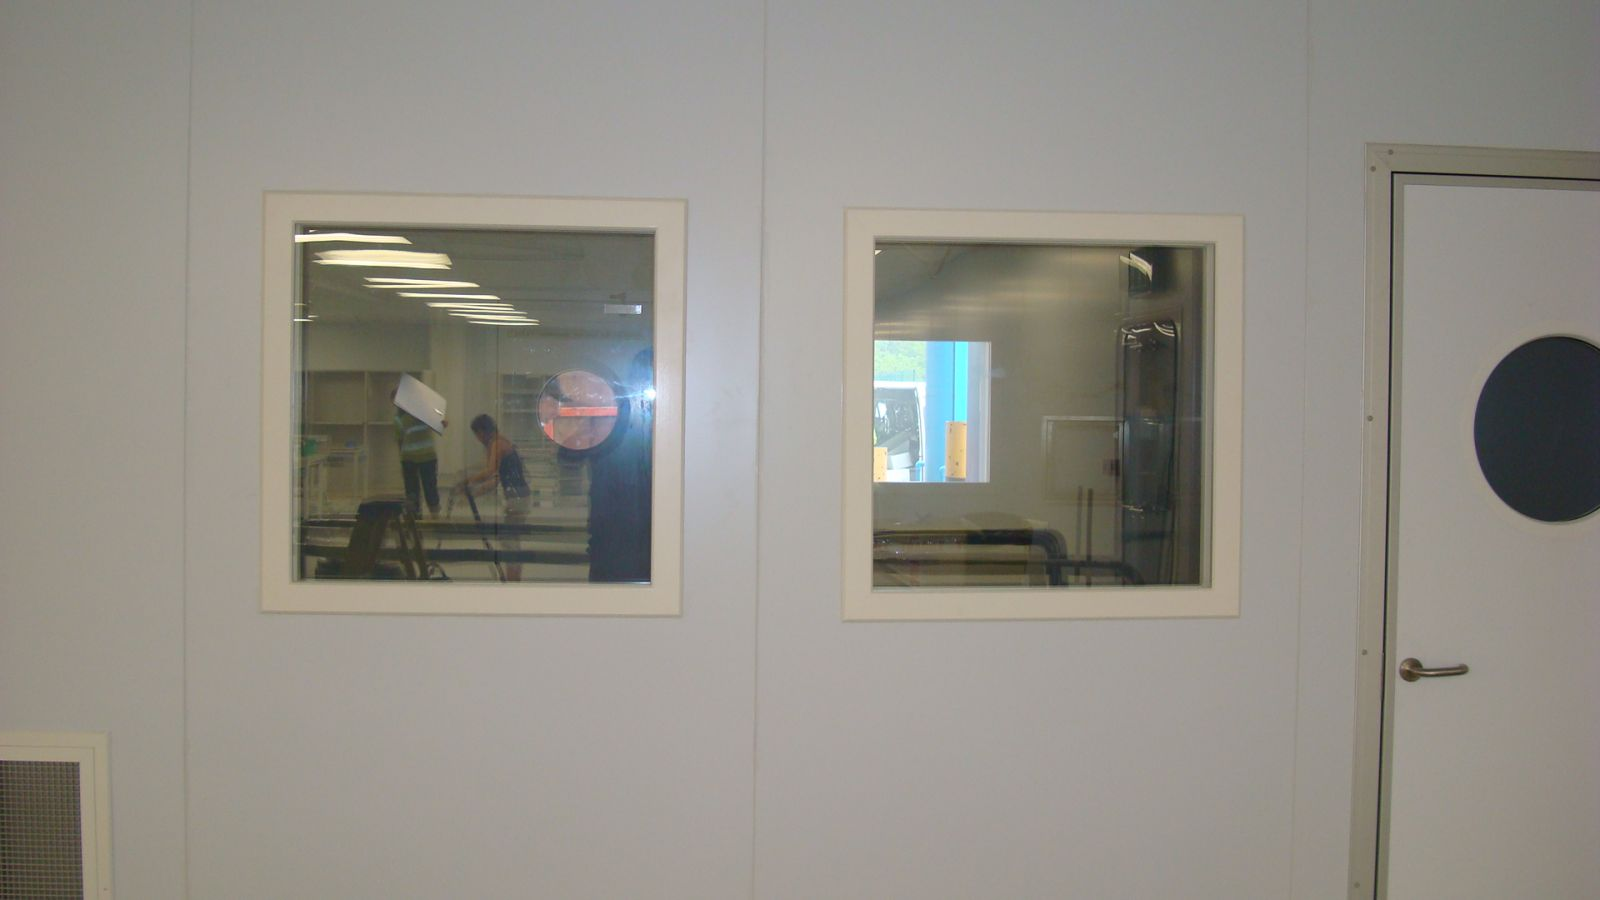 clean room windows - vision panels